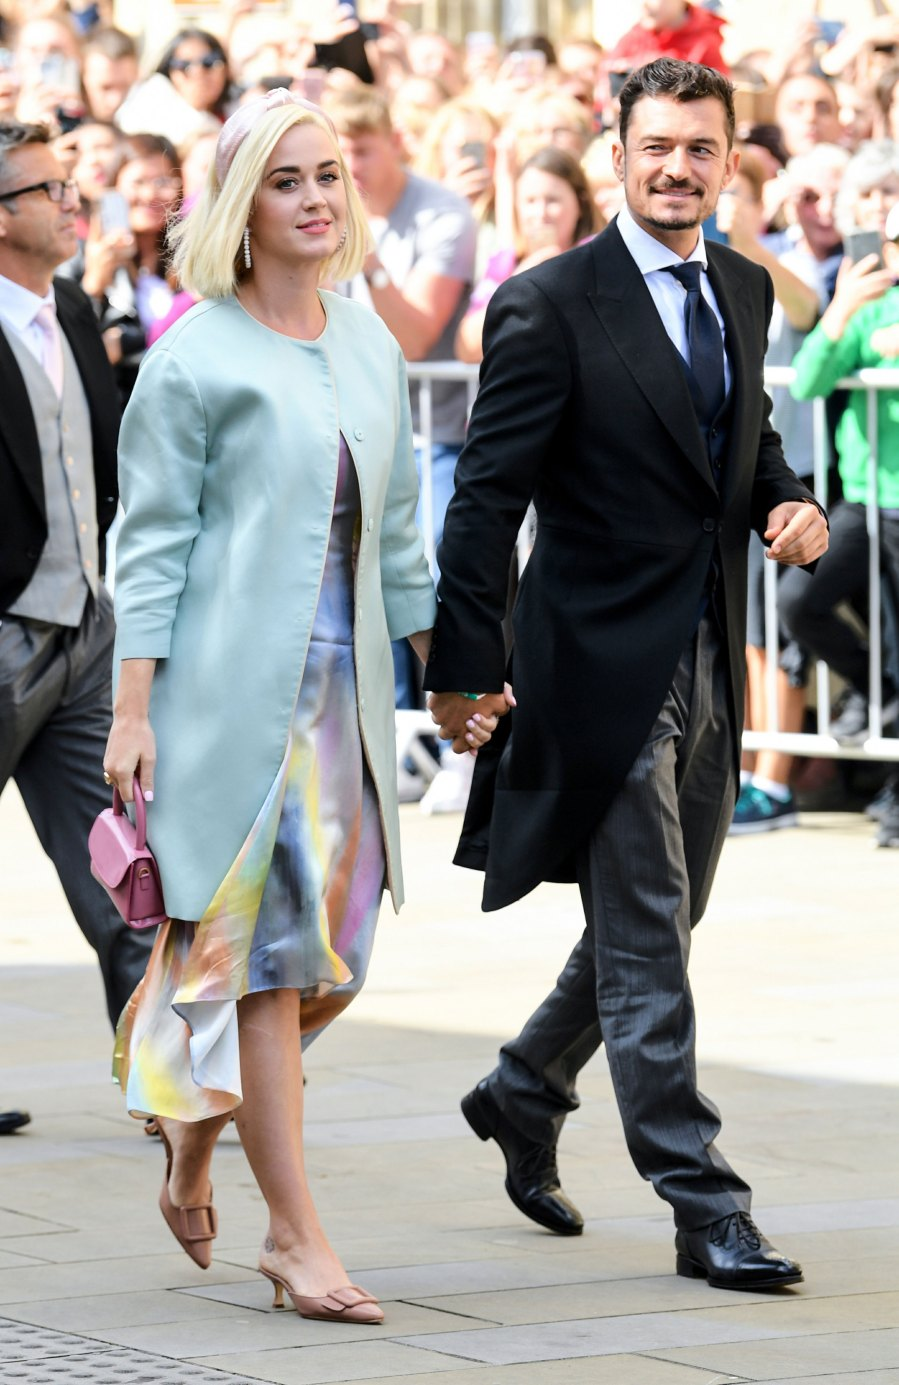 Katy Perry, Orlando Bloom Katy Perry, Orlando Bloom, Princess Beatrice and More Celebrity Guests Attend Ellie Goulding's Wedding